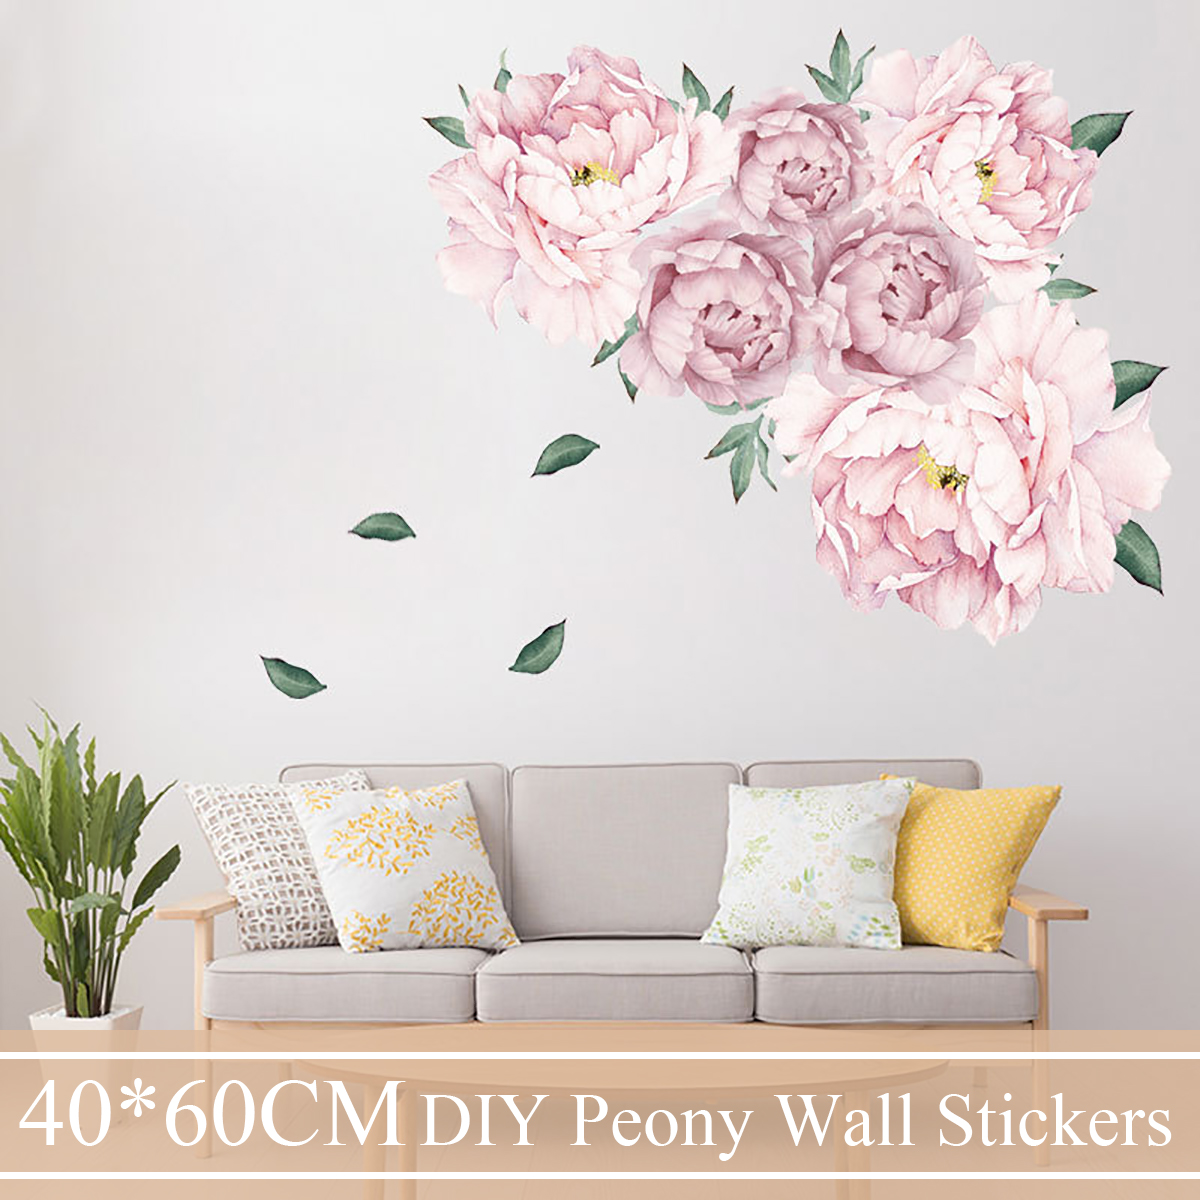 Details About Peony Flower Wall Sticker Mural Art Vinyl Decal Home Bedroom Decor Diy Beautiful